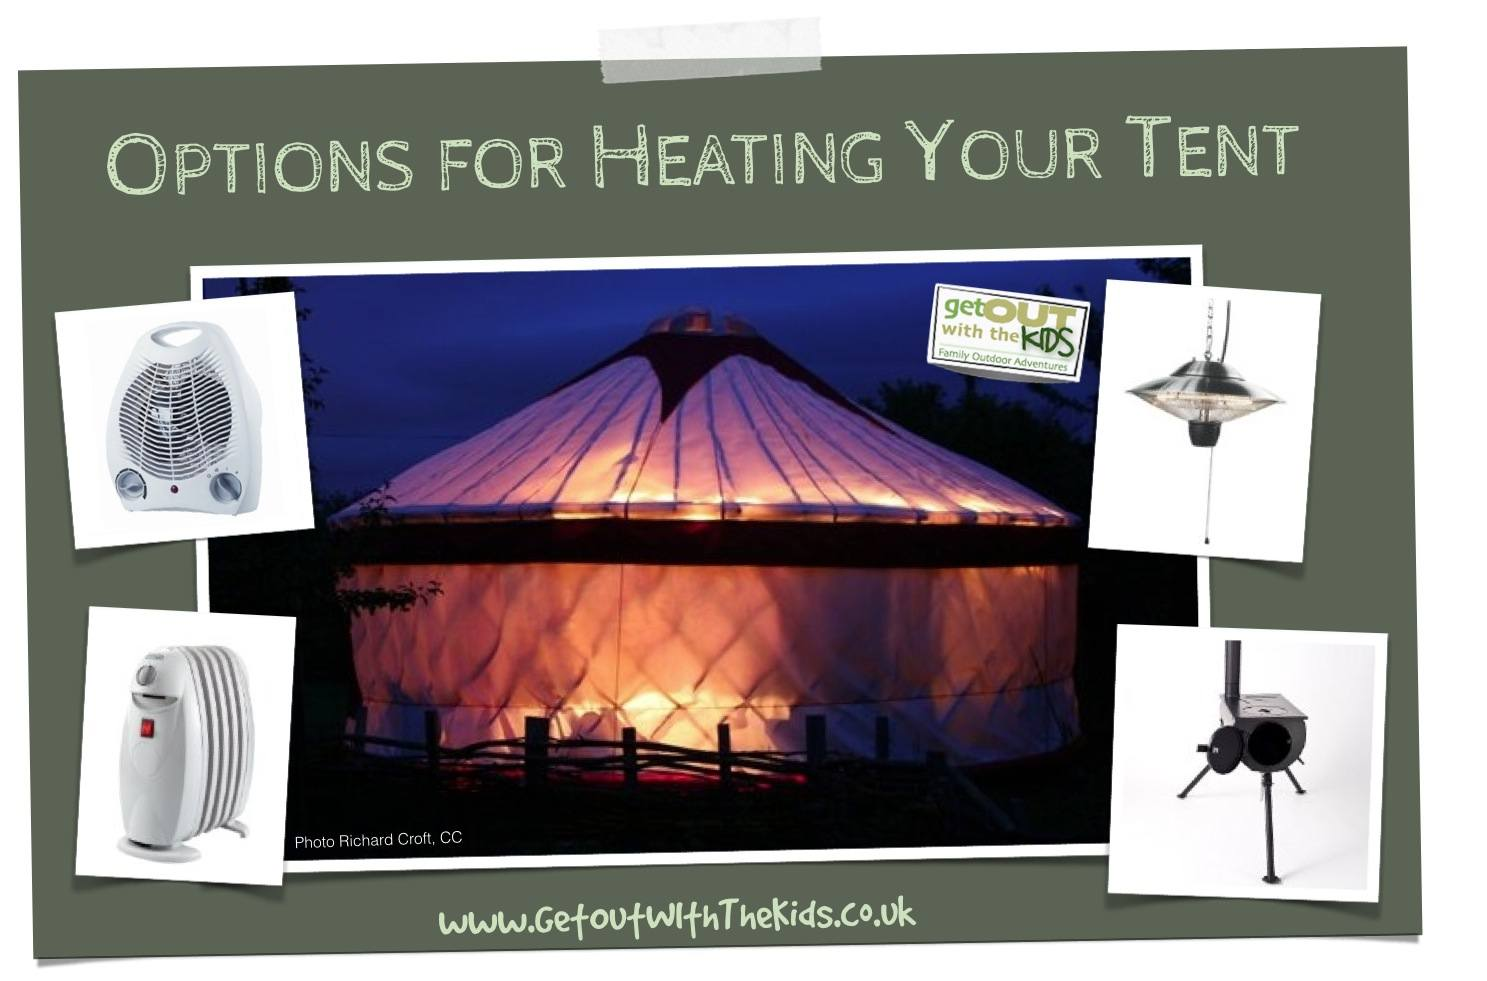 Options for Heating Your Tent